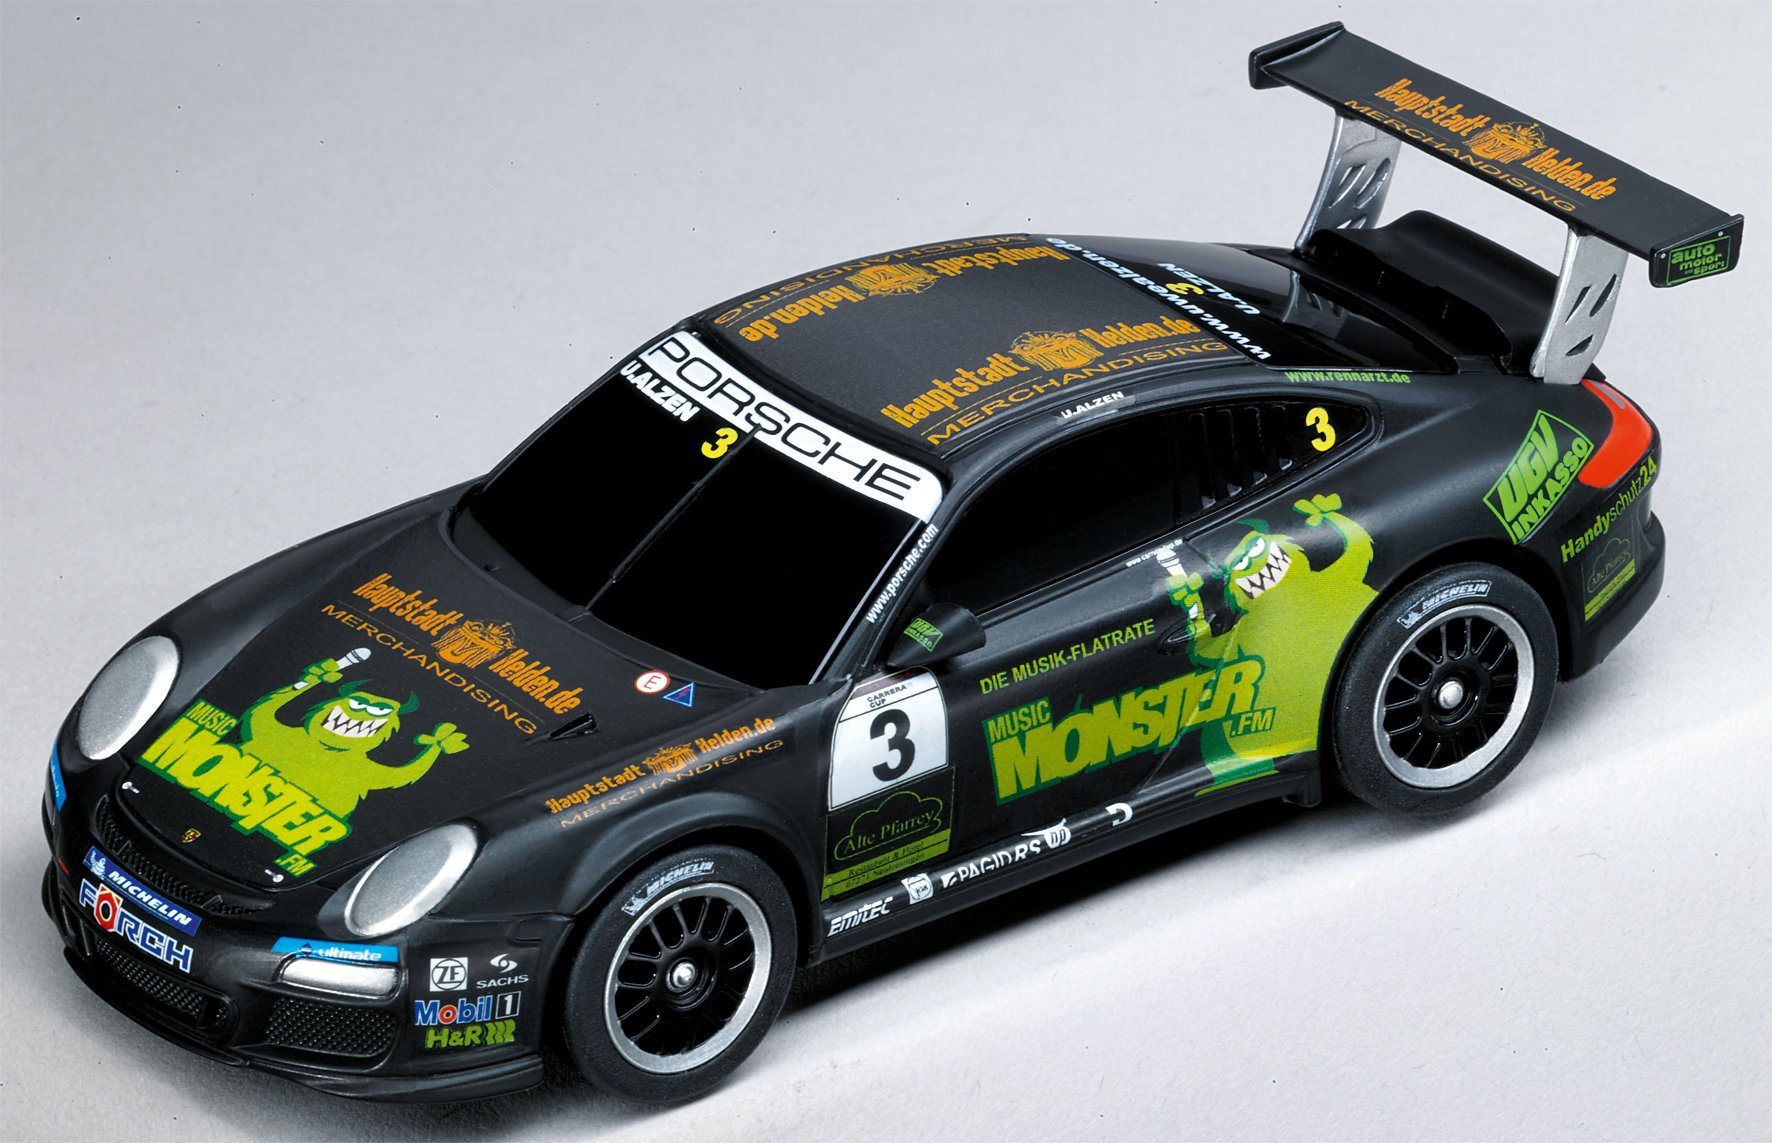 Carrera GO!!! Analog Slot Car Racing Vehicle - 61216 Porsche GT3 Cup Monster FM U.Alzen - (1:43 Scale) by Carrera